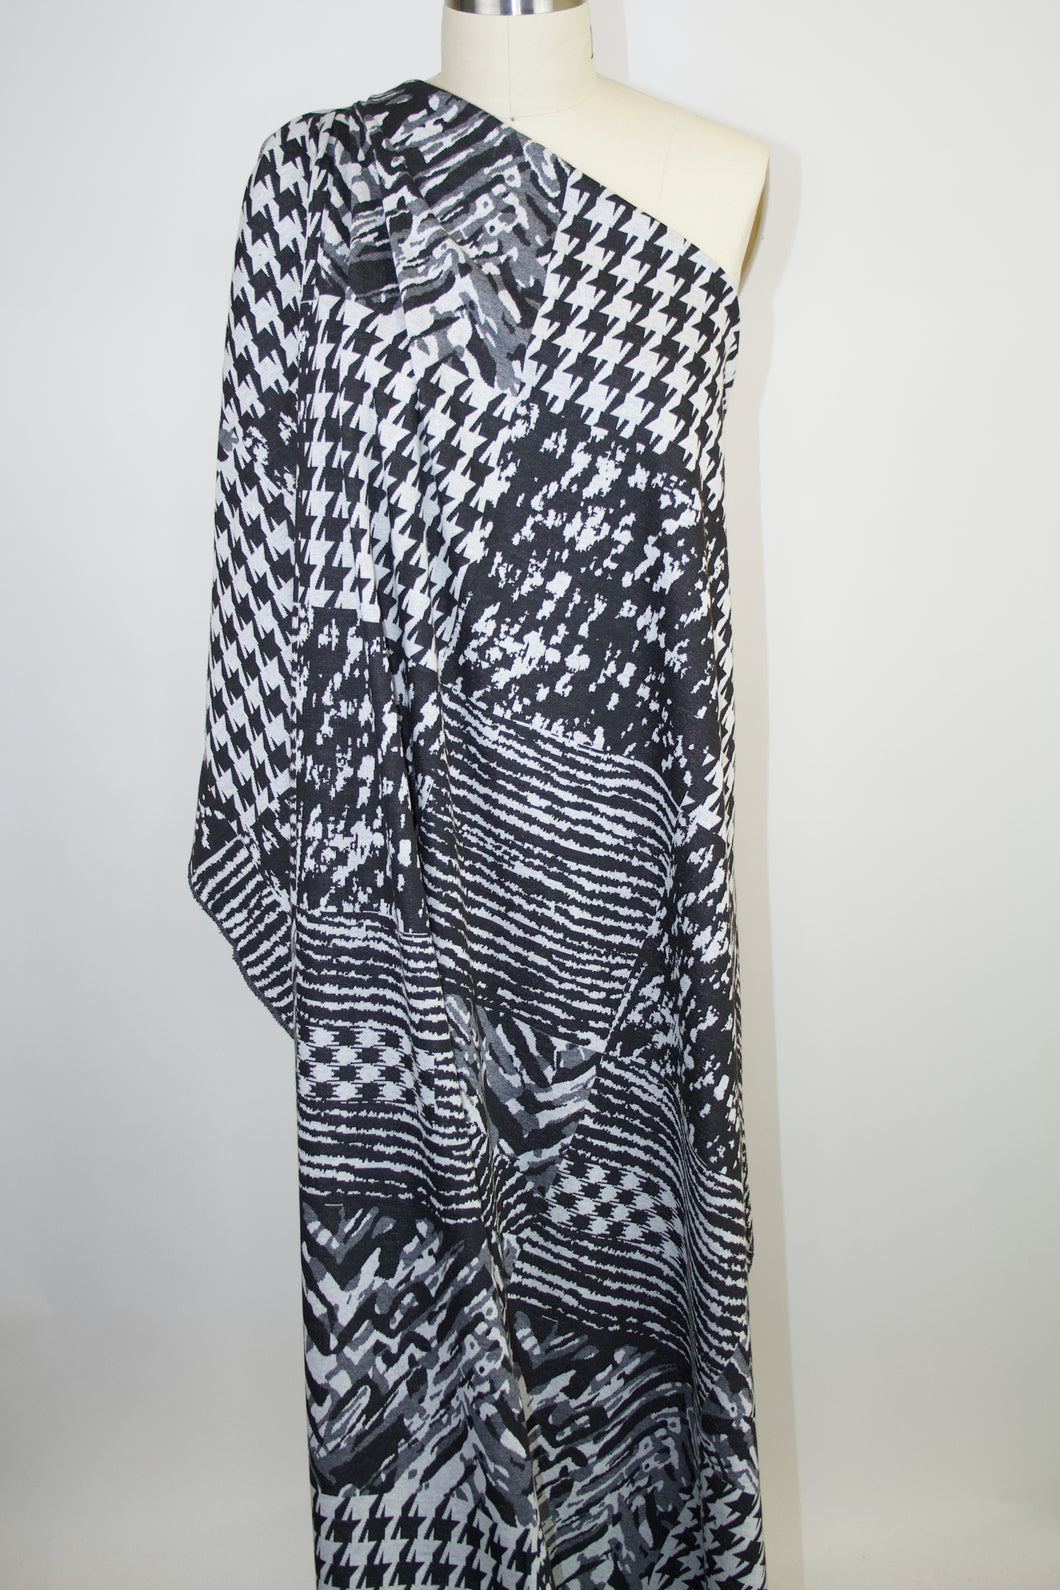 Squared Off Print Designer Ponte Knit - Black/Grays